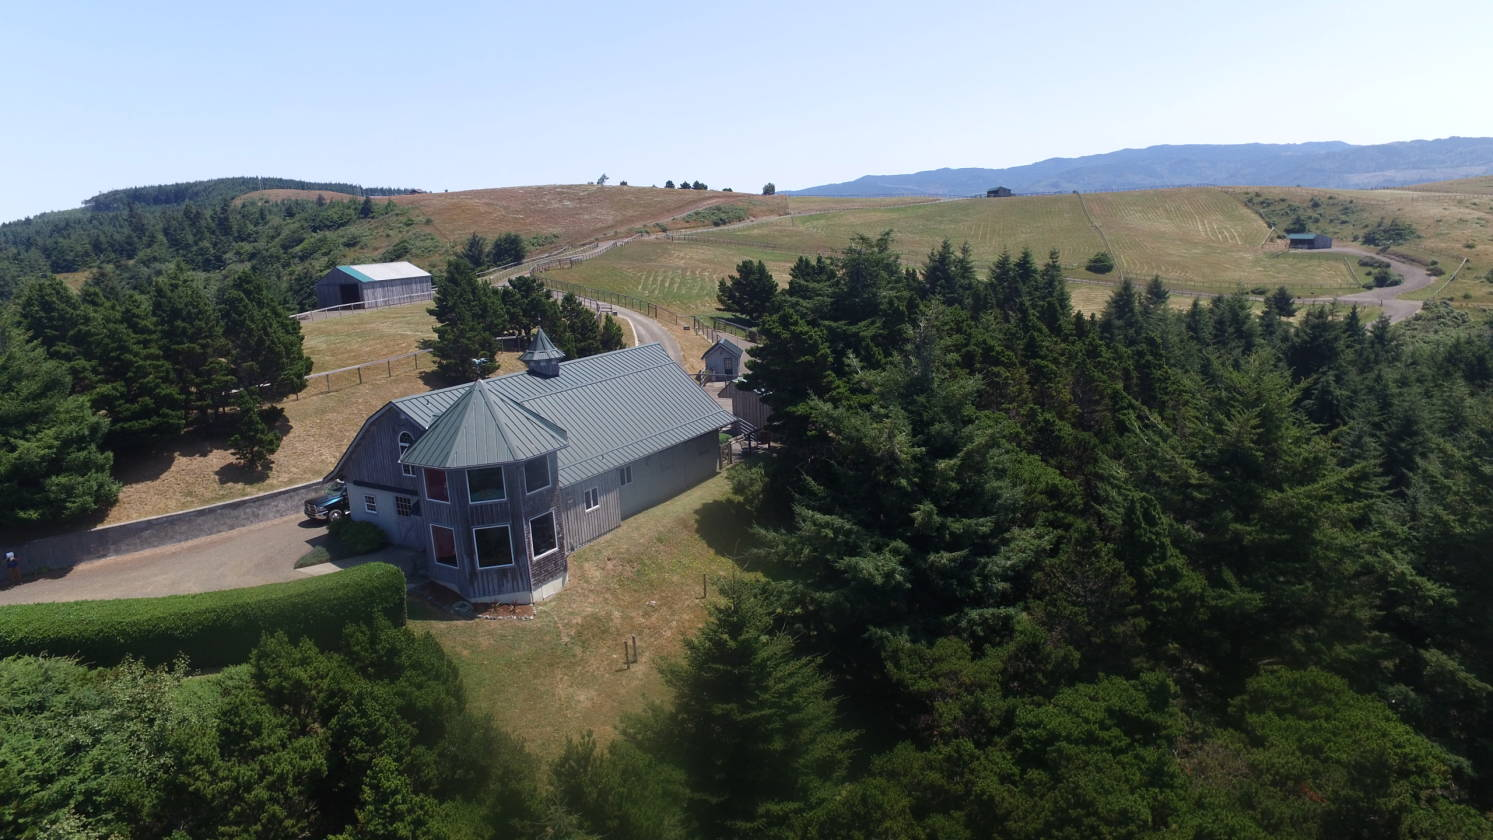 Previous Vista Ridge Farm 85 Acres with Panoramic